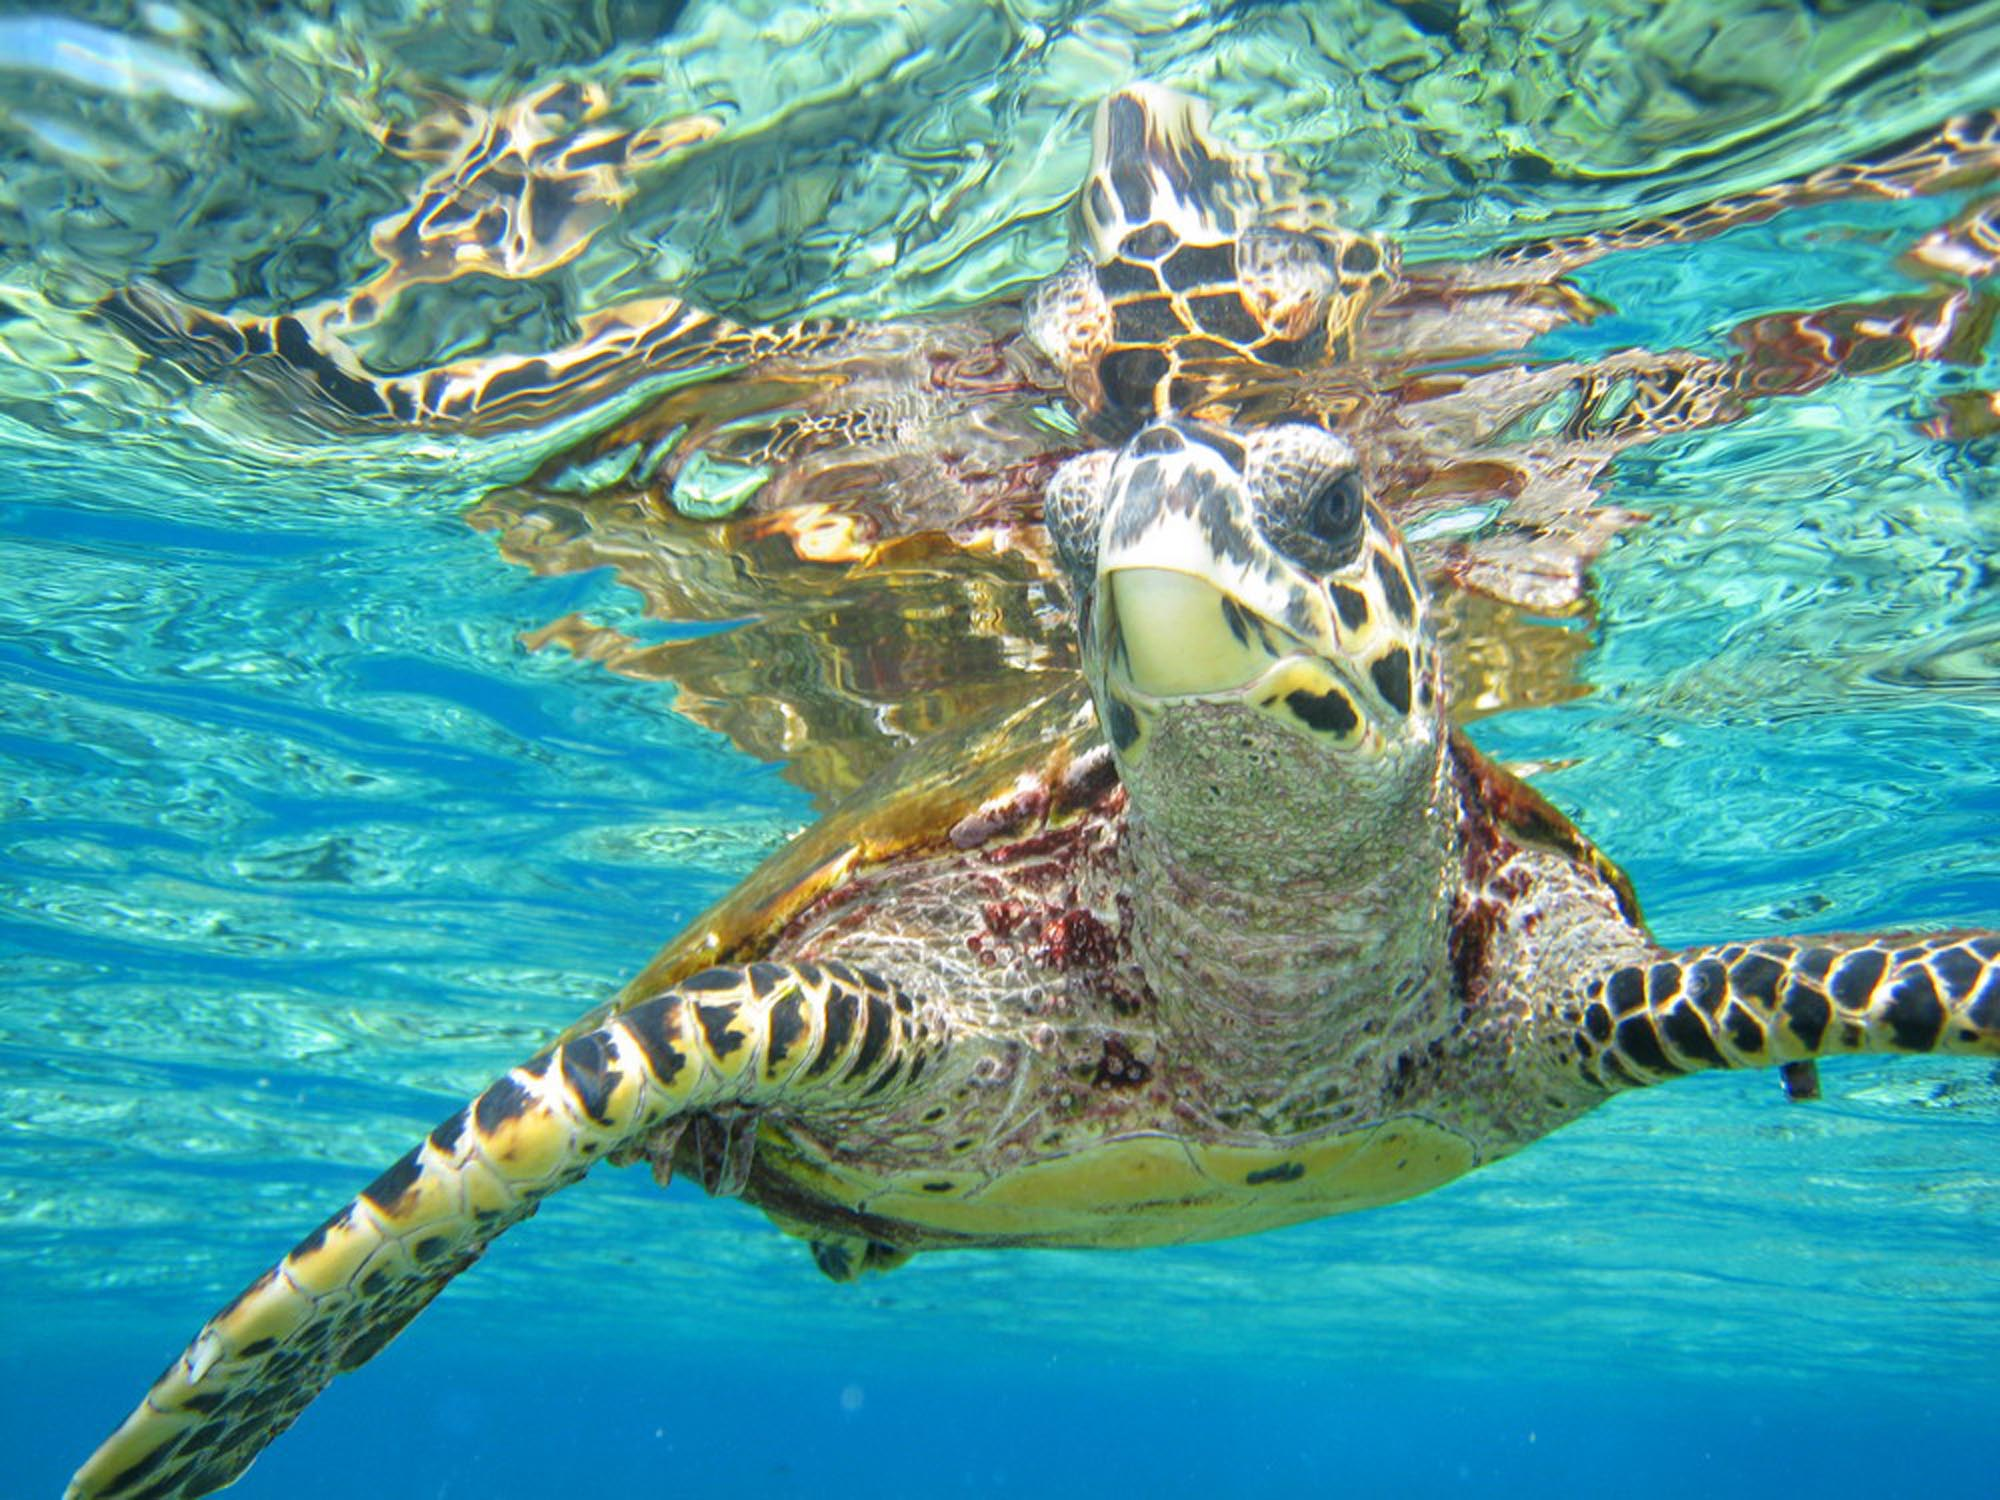 Turtle in Indian Ocean